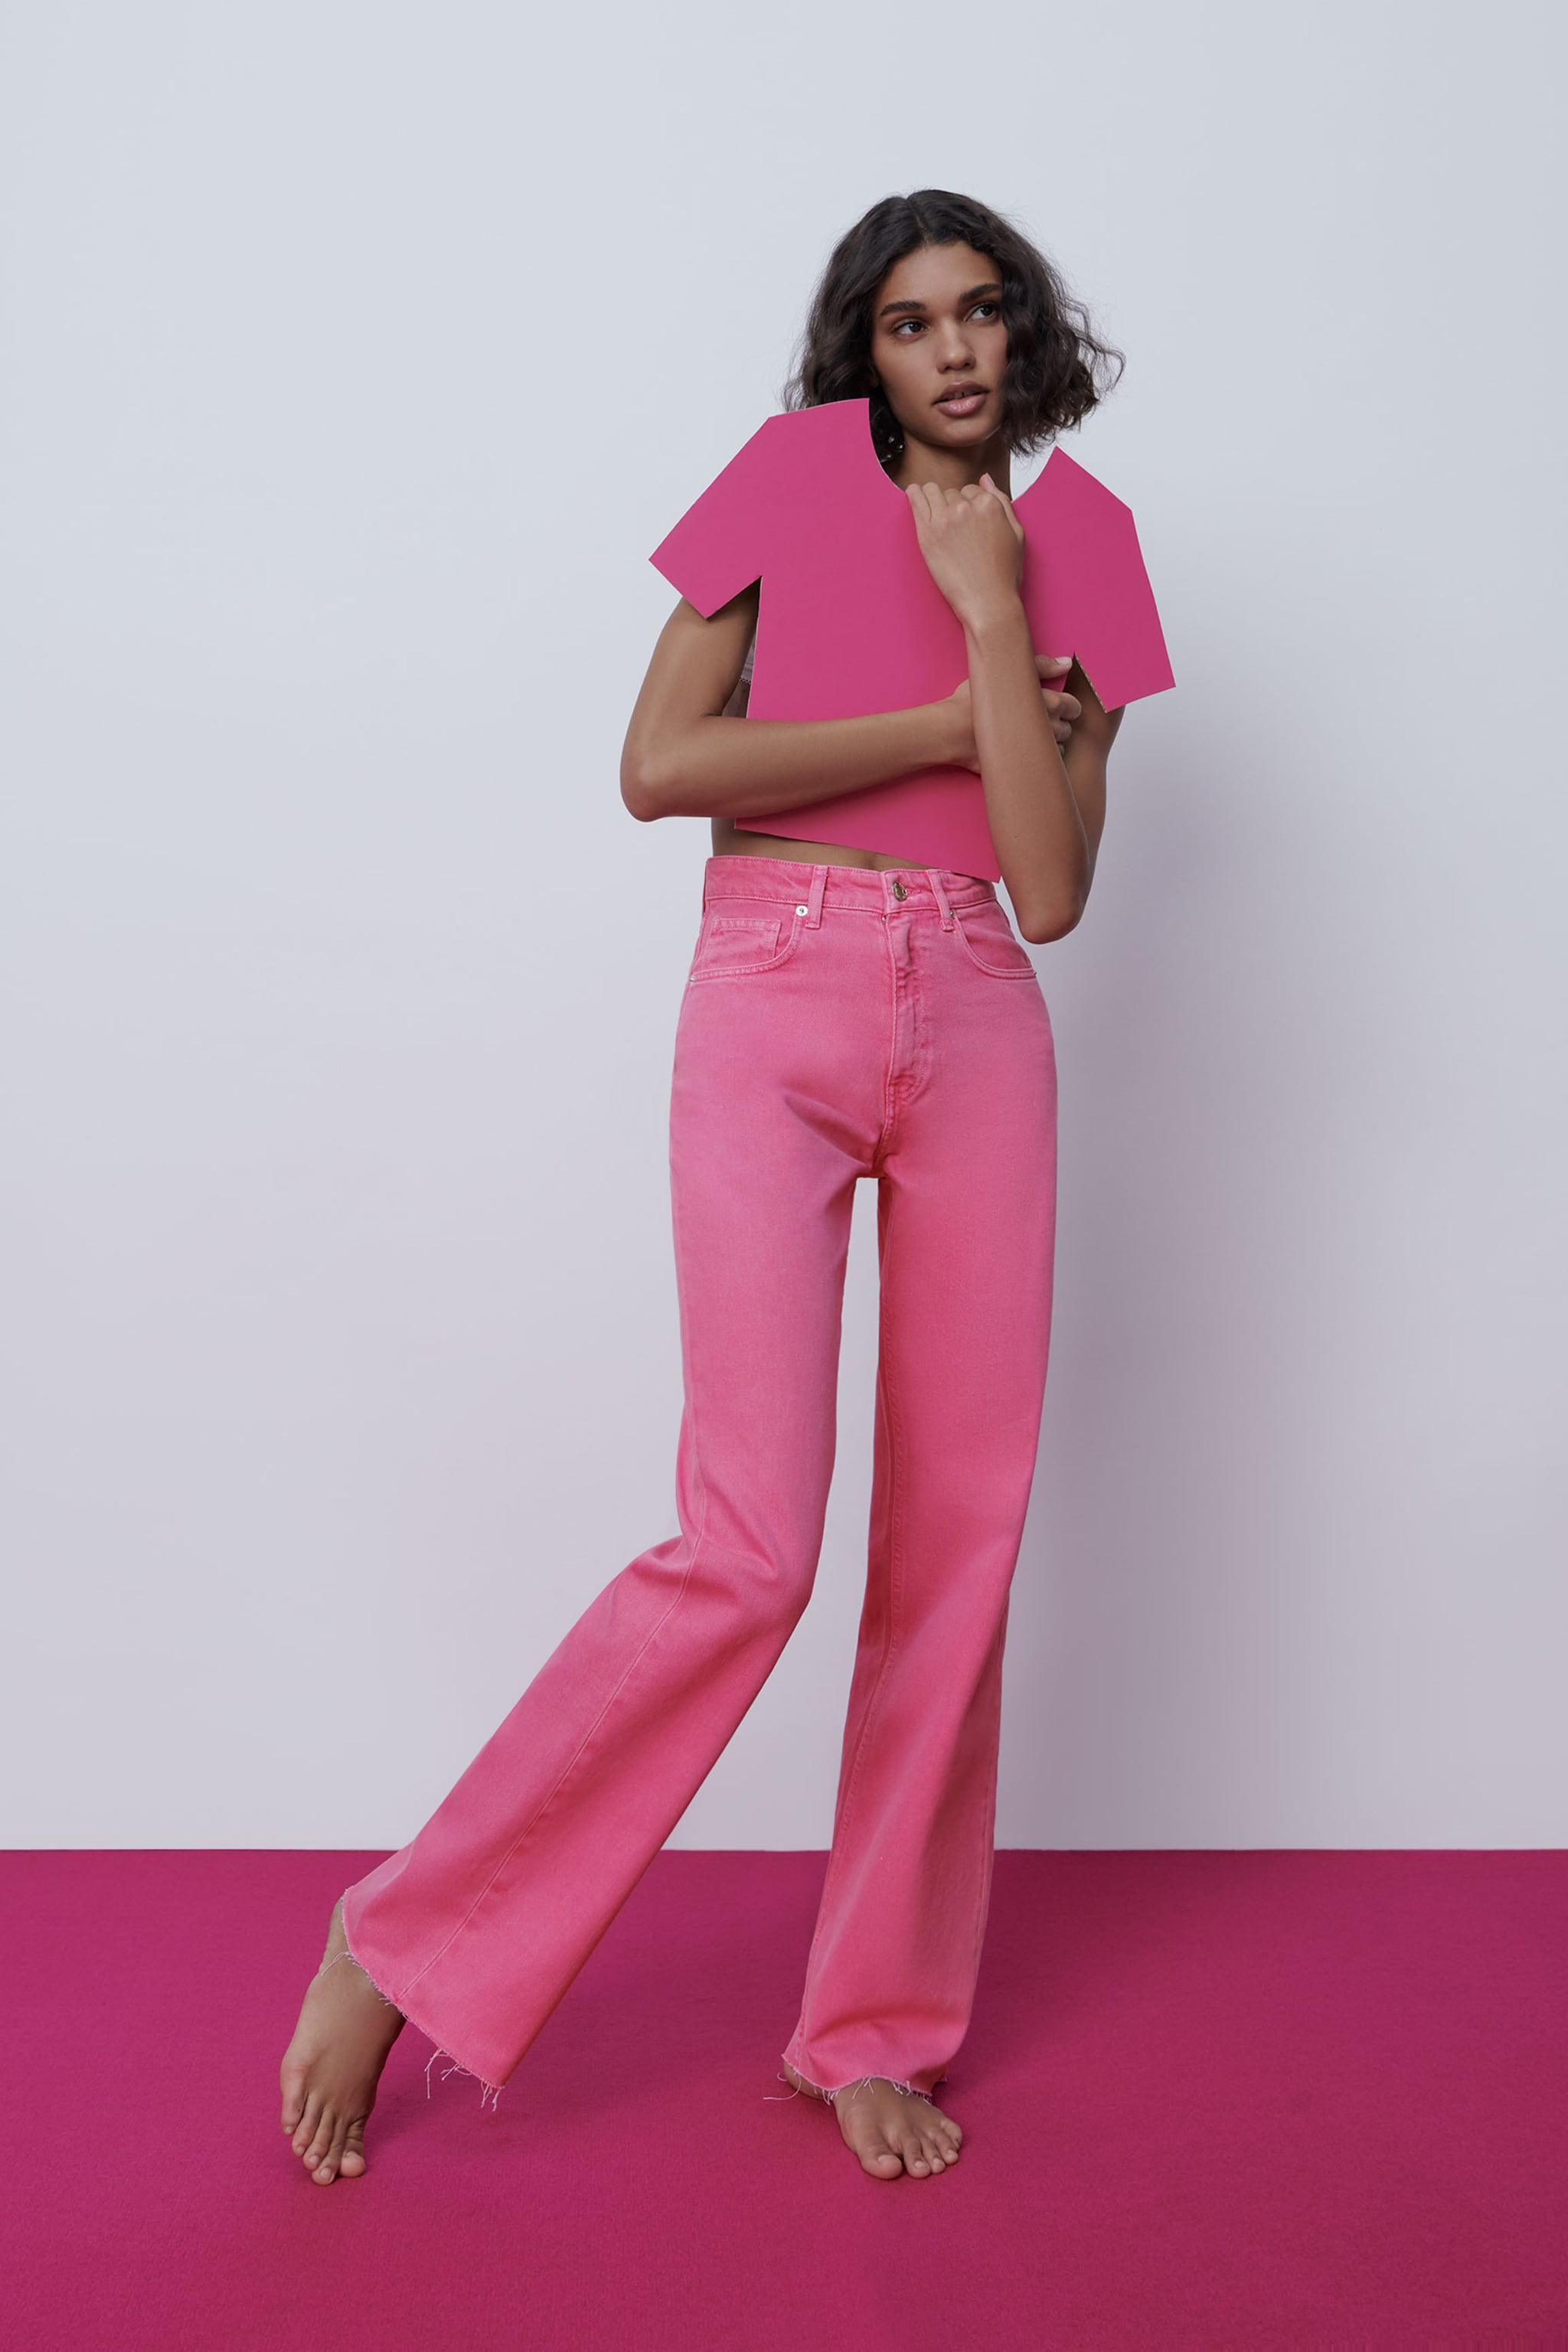 SOLID COLOR FULL LENGTH WIDE LEG JEANS